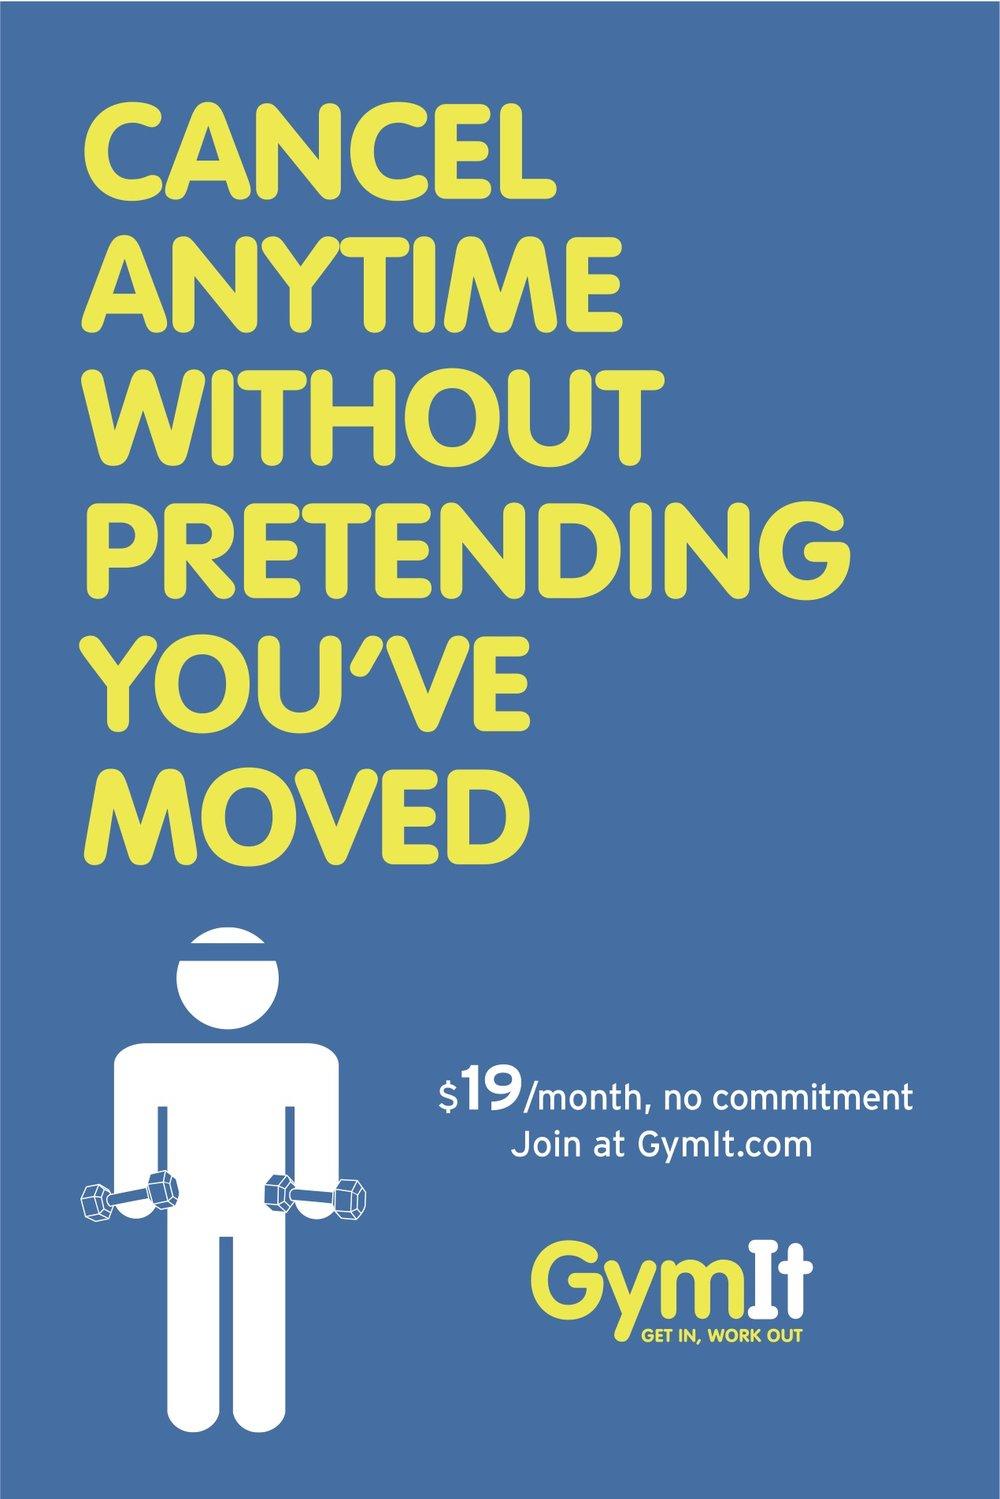 GymItPrintAds_Revised.jpg